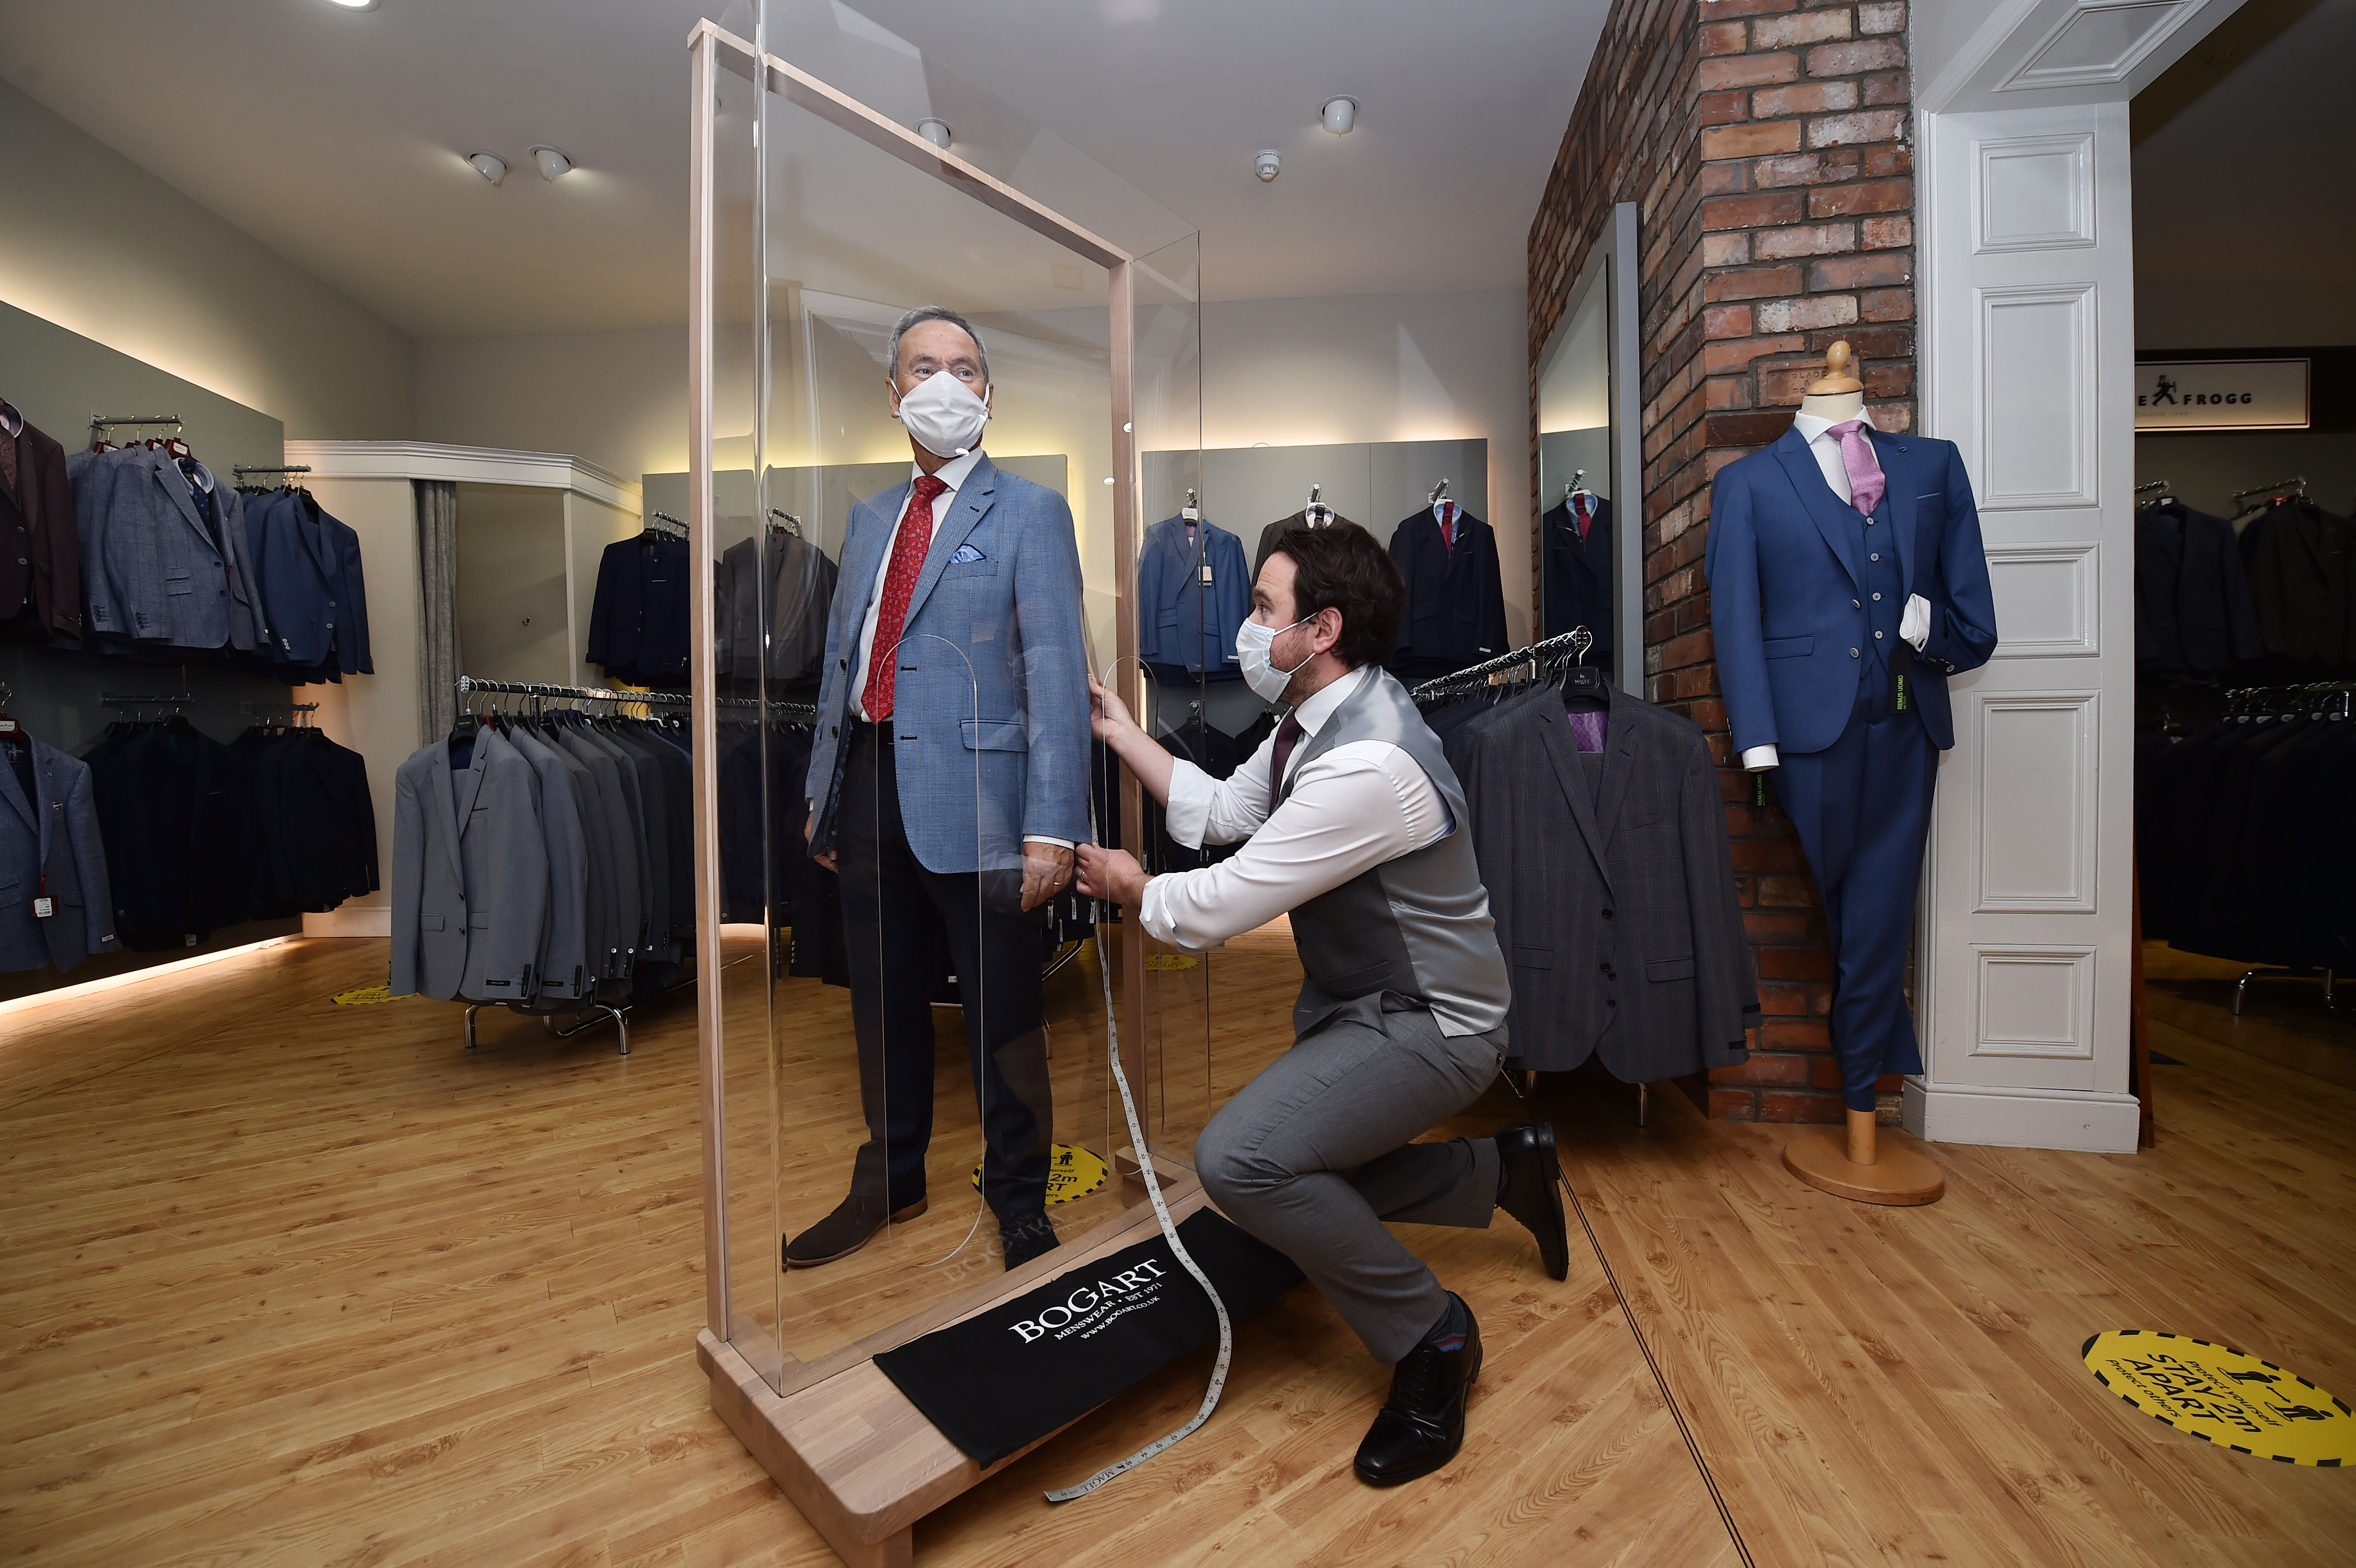 BELFAST, NORTHERN IRELAND - JUNE 12: Tailor Gary Keenan (R) of Bogart Menswear measures up a suit using a customer pod designed to keep customers safe from Covid-19 after their store reopened for business on June 12, 2020 in Belfast, Northern Ireland. After being shuttered for months to curb the spread of Covid-19, retailers here reopened with social distancing measures, a few days ahead of when similar businesses can reopen in England. (Photo by Charles McQuillan/Getty Images)